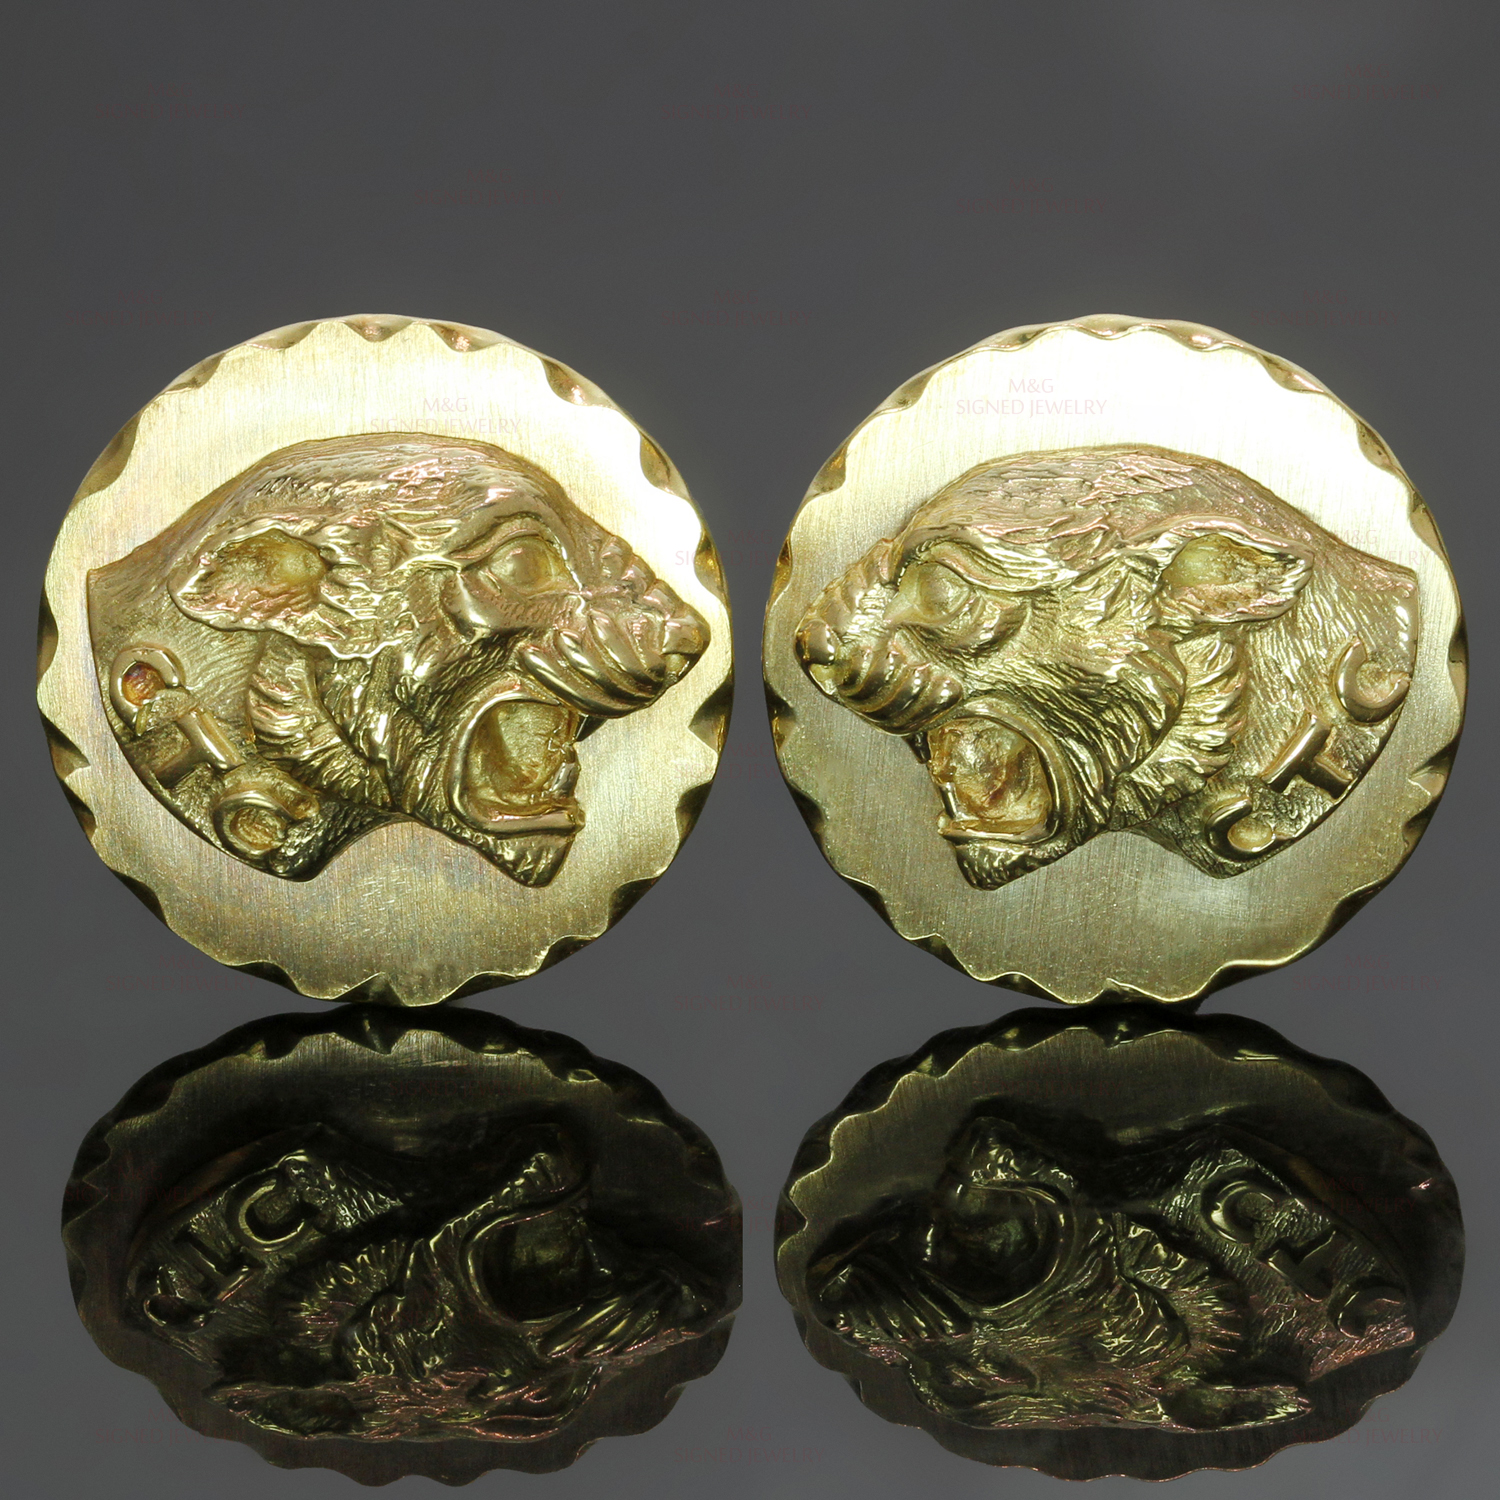 VAN CLEEF & ARPELS 18k Yellow Gold Panther Cufflinks